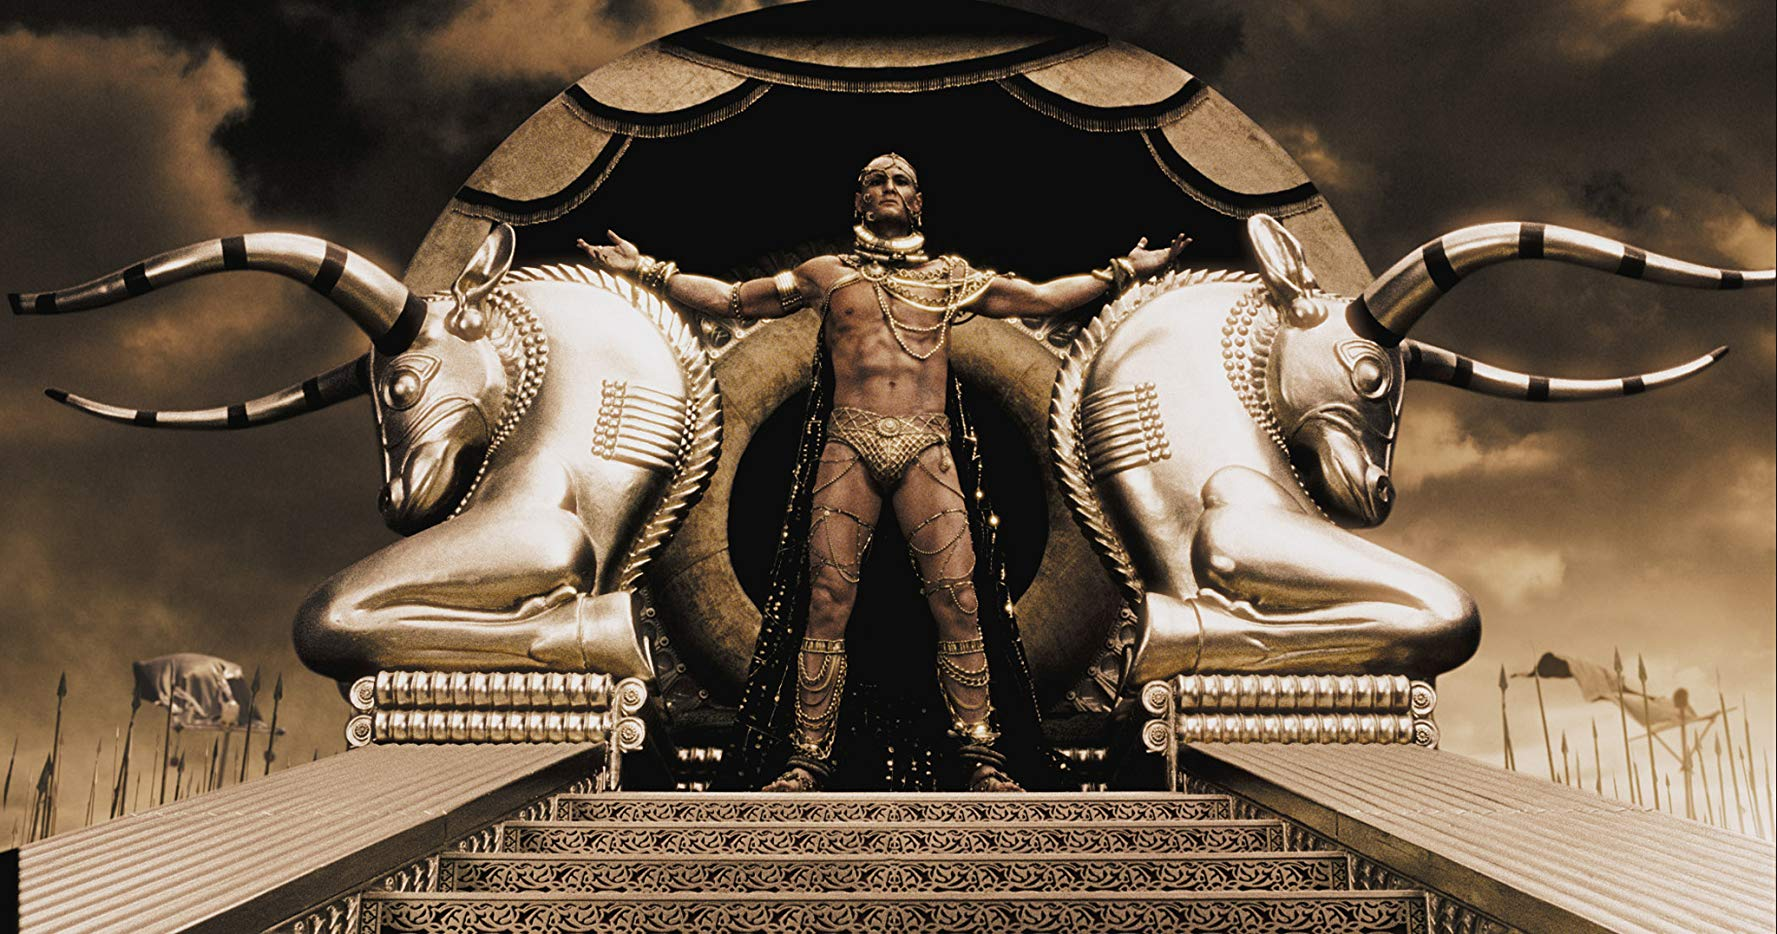 King Xerxes (Rodrigo Santoro) in 300 (2007)